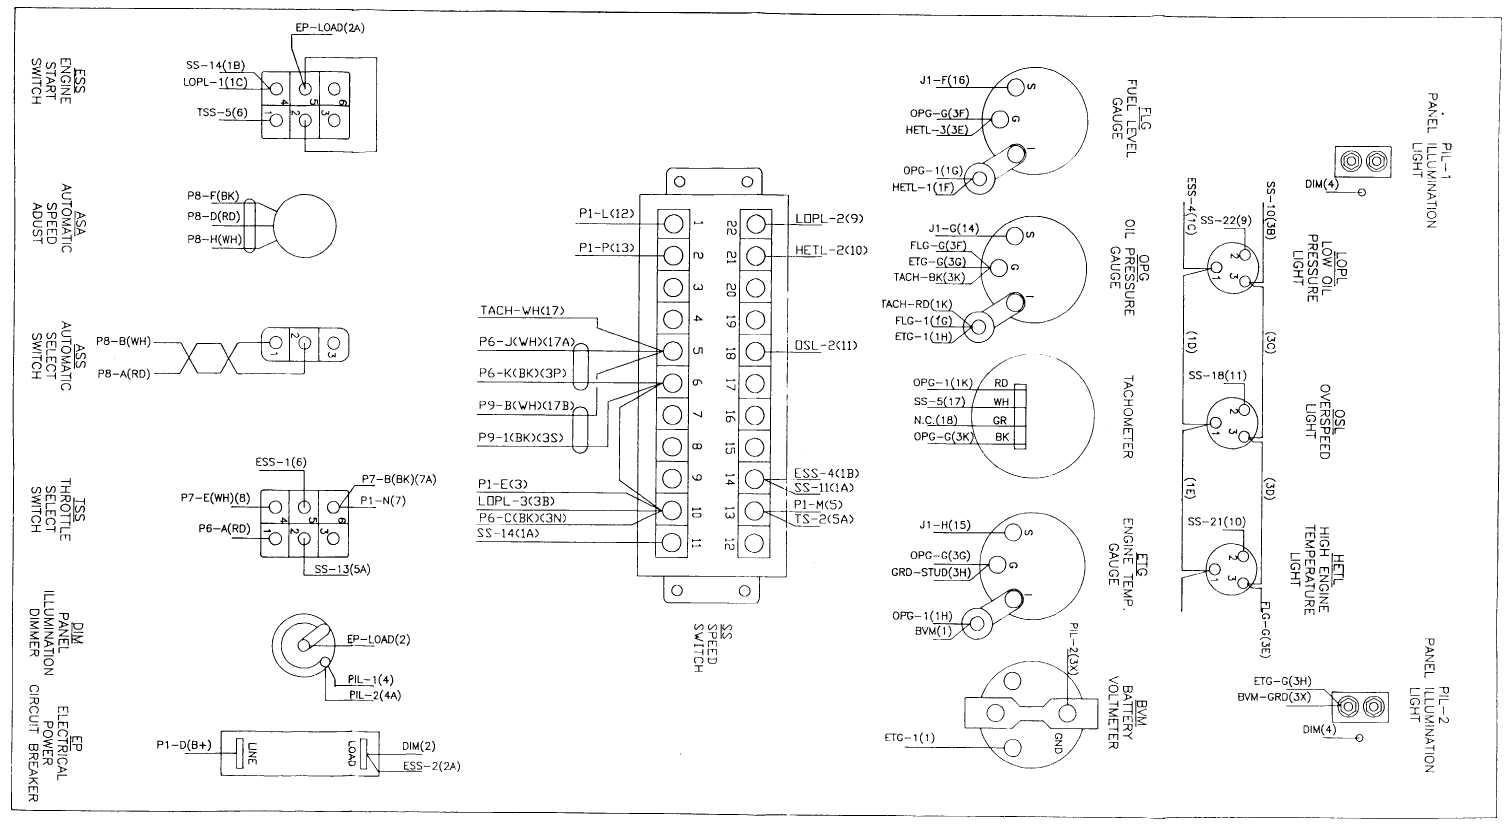 TM 10 4320 315 24_19_1 figure 2 1 control panel wiring diagram (sheet 2 of 4) control panel wiring diagram pdf at soozxer.org